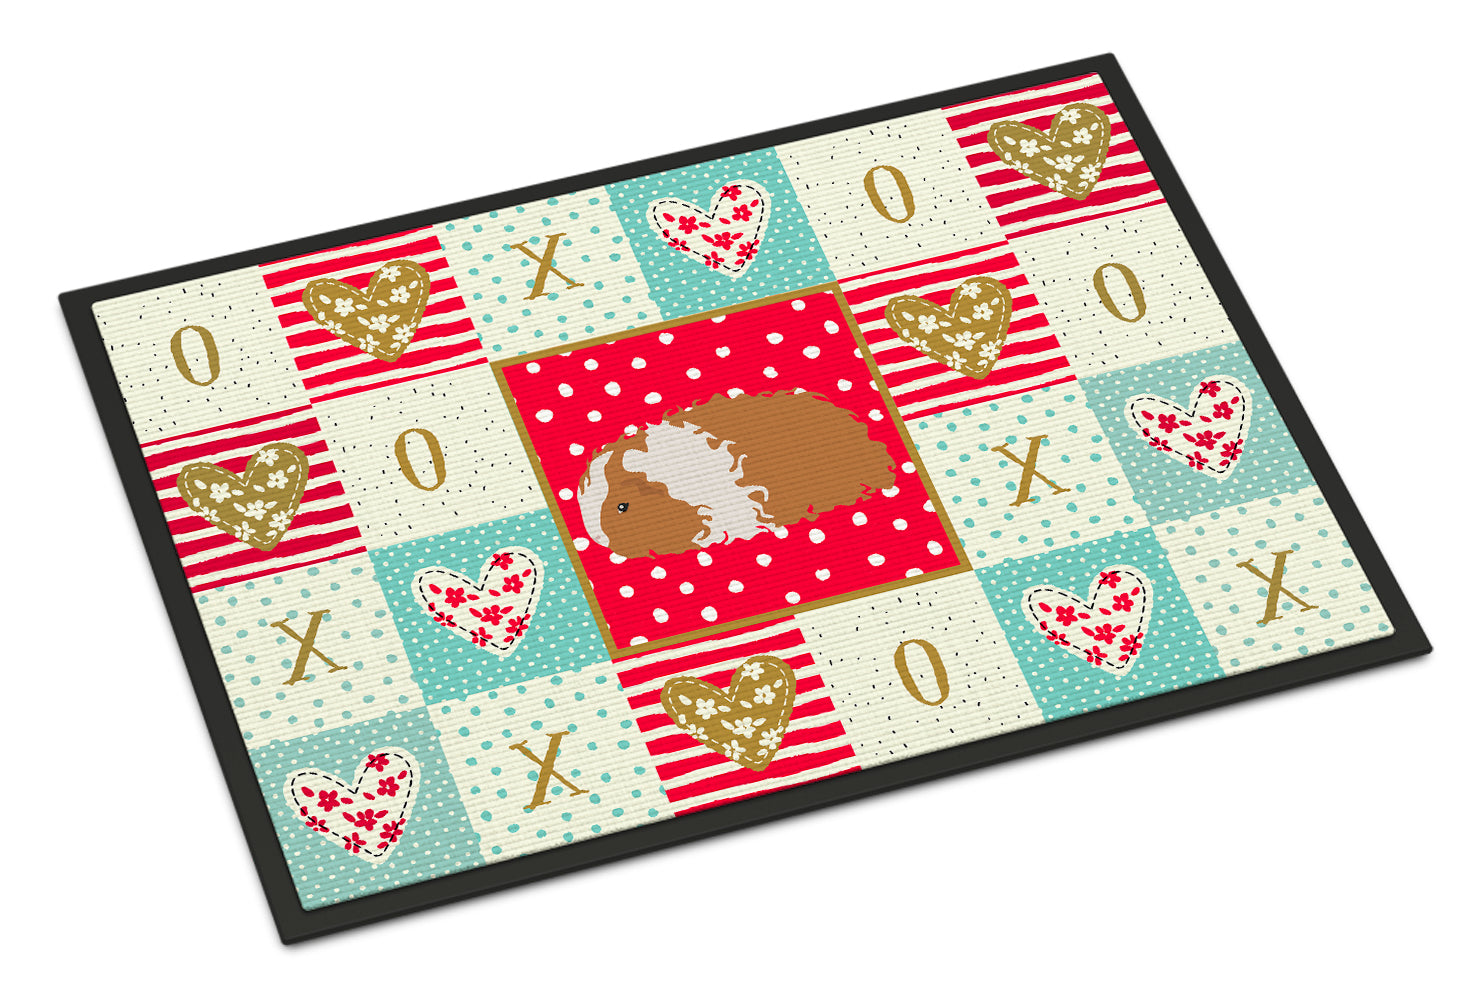 Texel Guinea Pig Love Indoor or Outdoor Mat 18x27 CK5437MAT by Caroline's Treasures